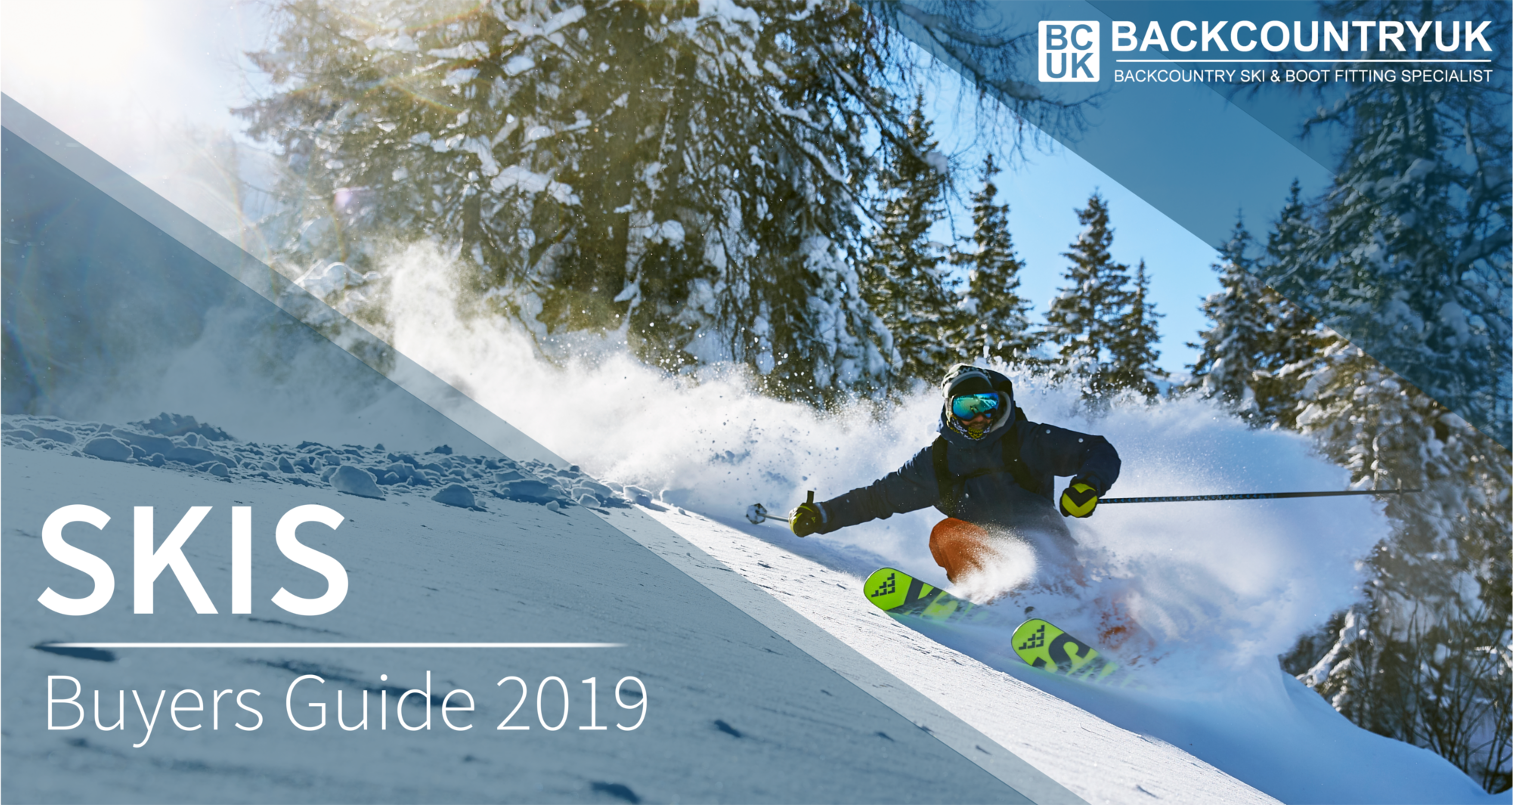 358362252a2 Guide to Buying Skis 2019